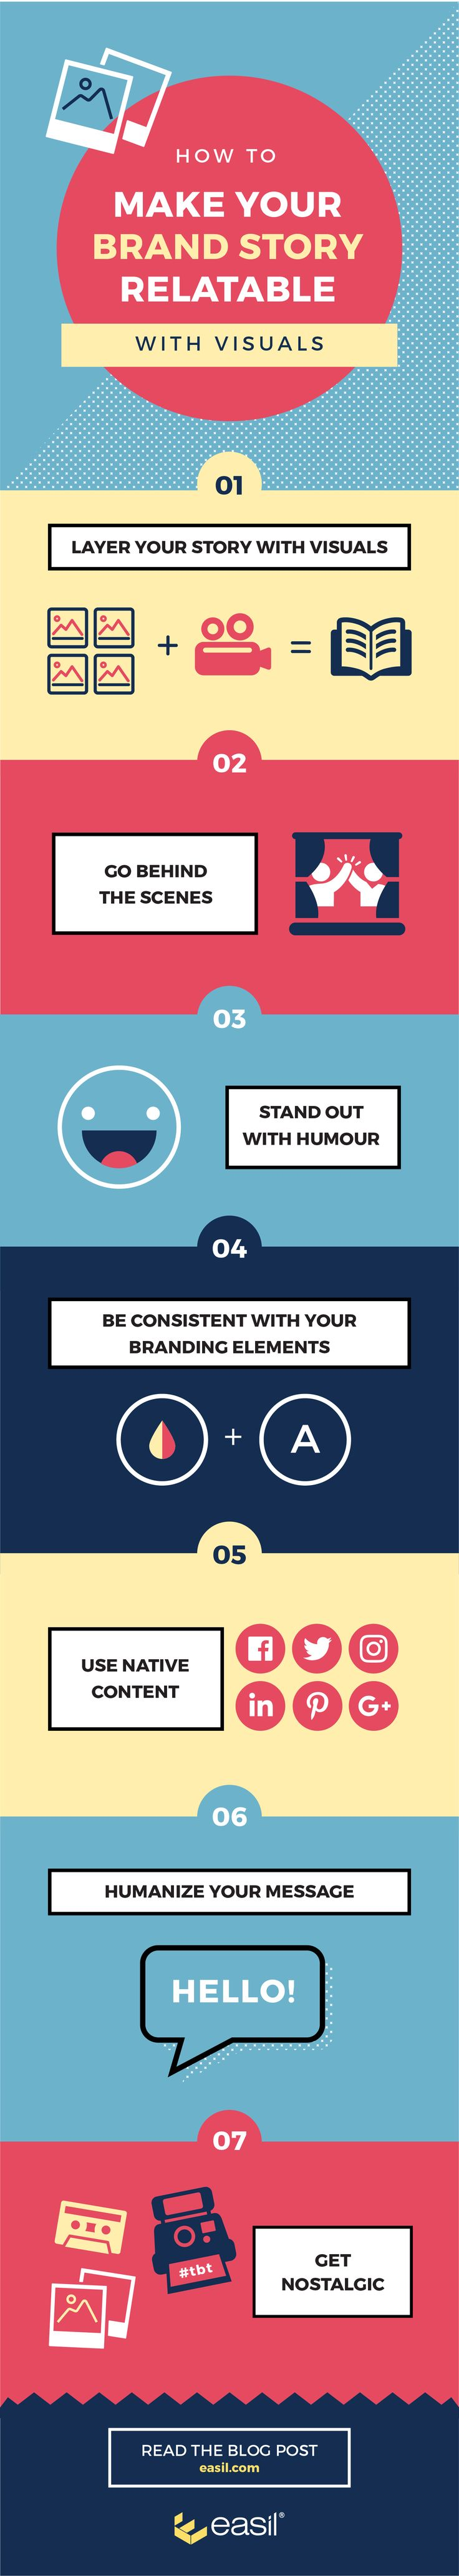 7 tips for making your brand story relatable with graphics infographic